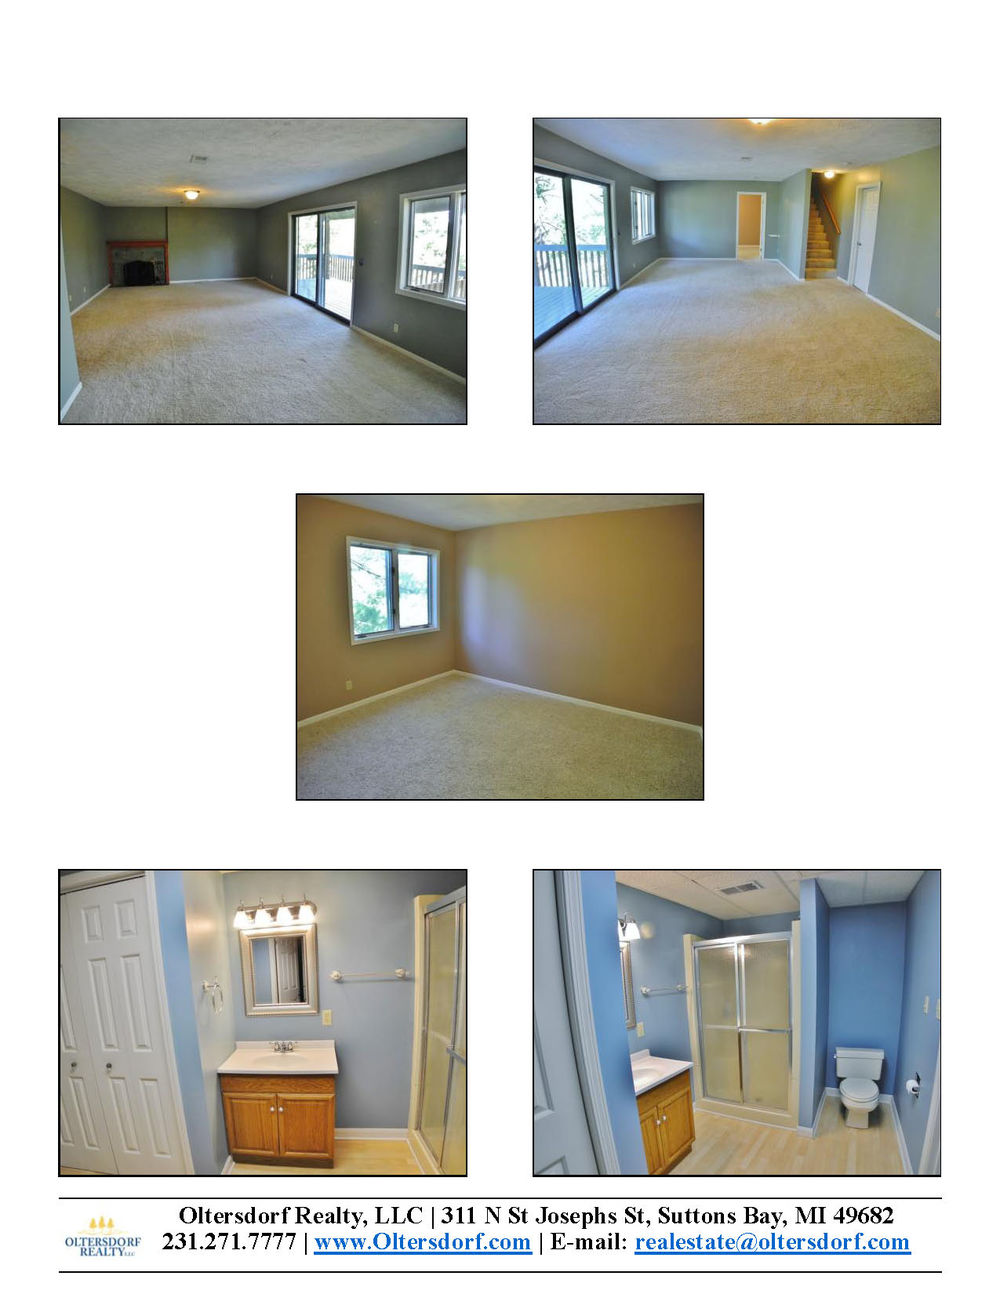 3246 Holiday View Drive, Traverse City, MI – 4 Bedroom, 3 bath Holiday Hills Home For sale by Oltersdorf Realty LLC (9).jpg